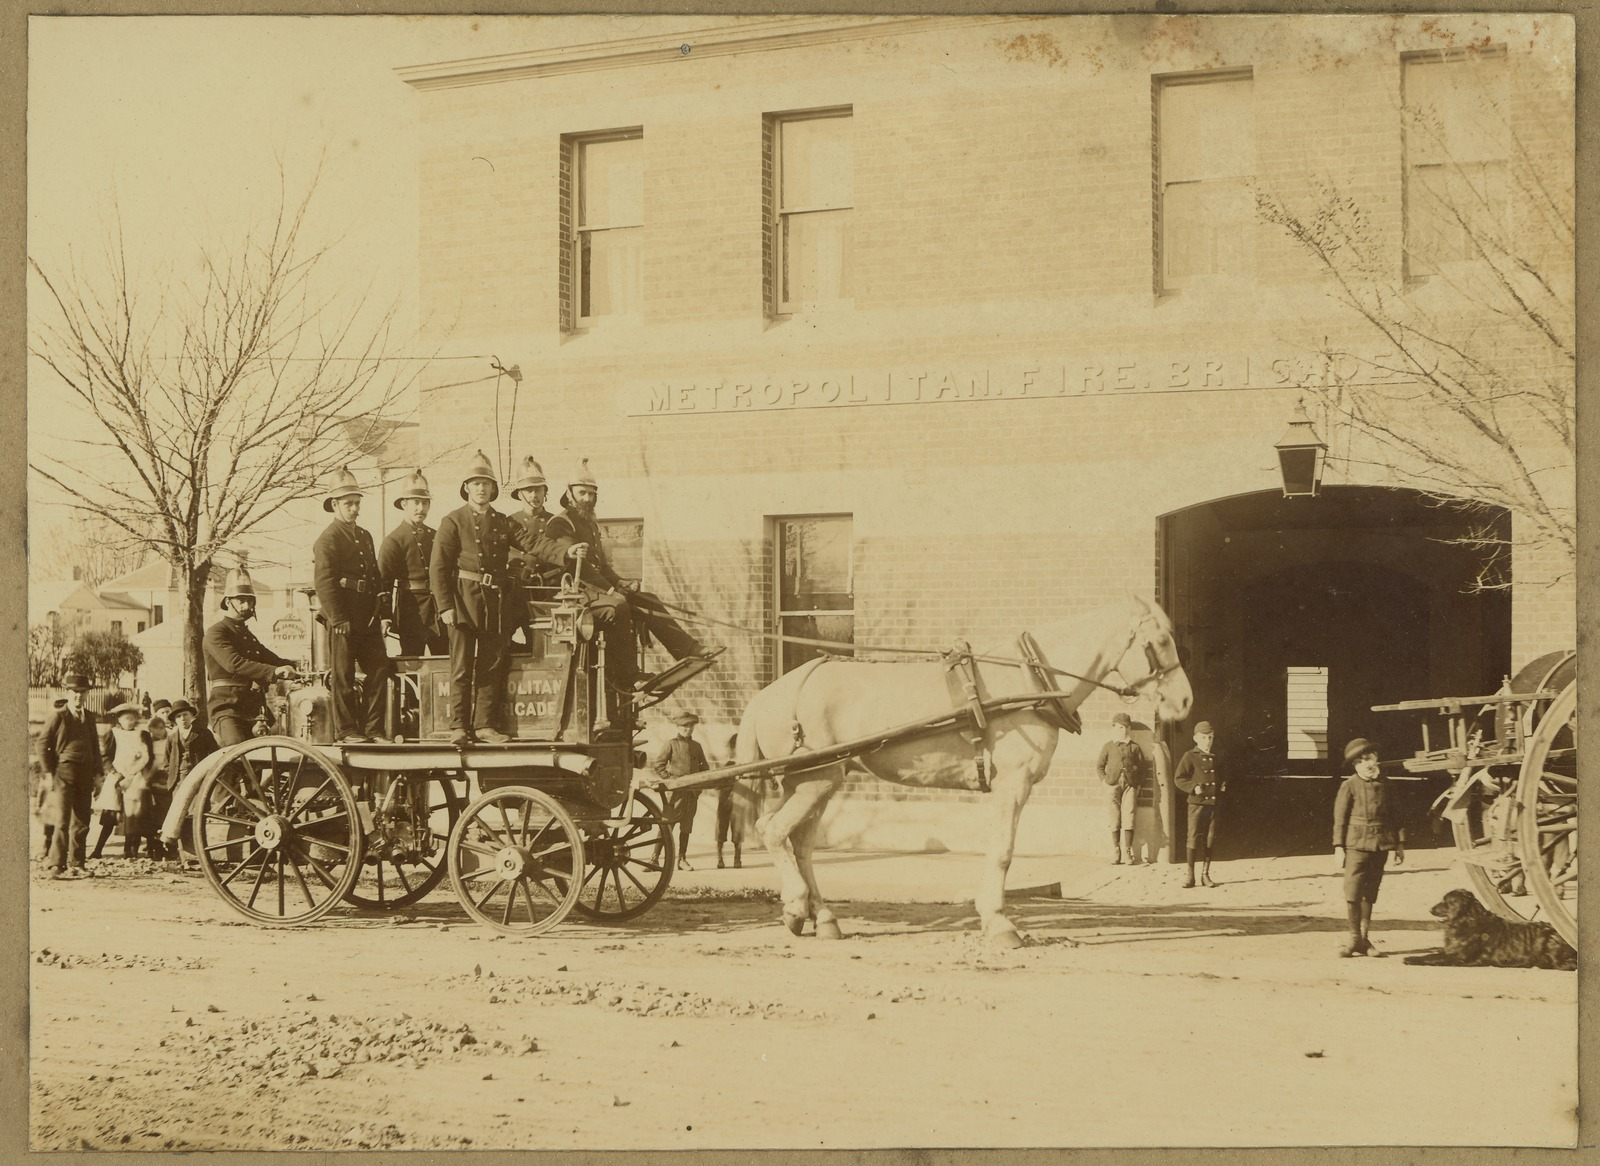 Williamstown Fire Brigade, Cecil Street, c1880.